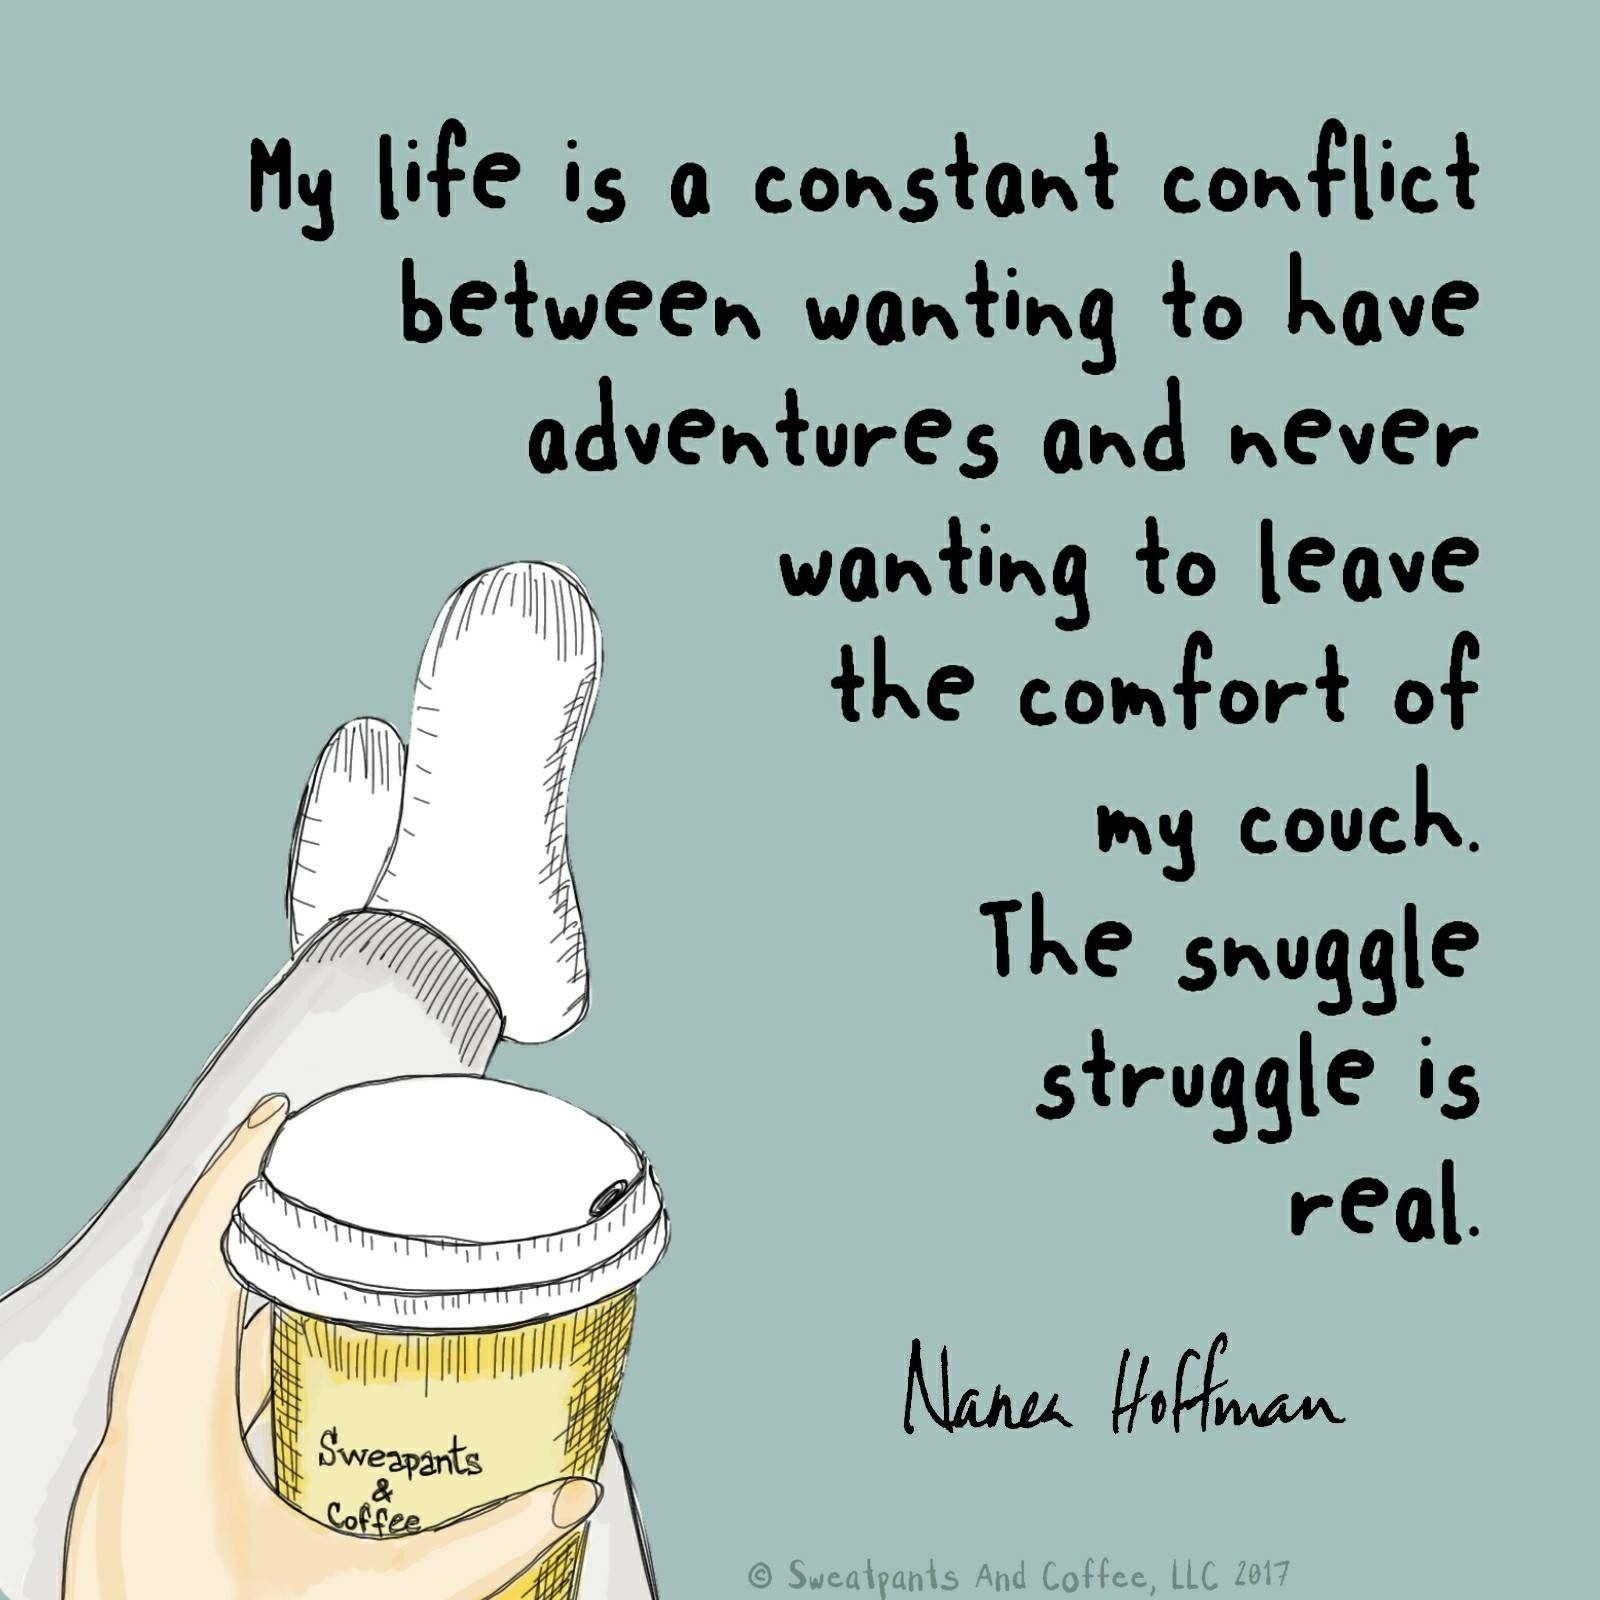 Pin By Georgia Garman On Sweatpants Coffee Struggle Is Real Favorite Words Pure Romance Consultant Business